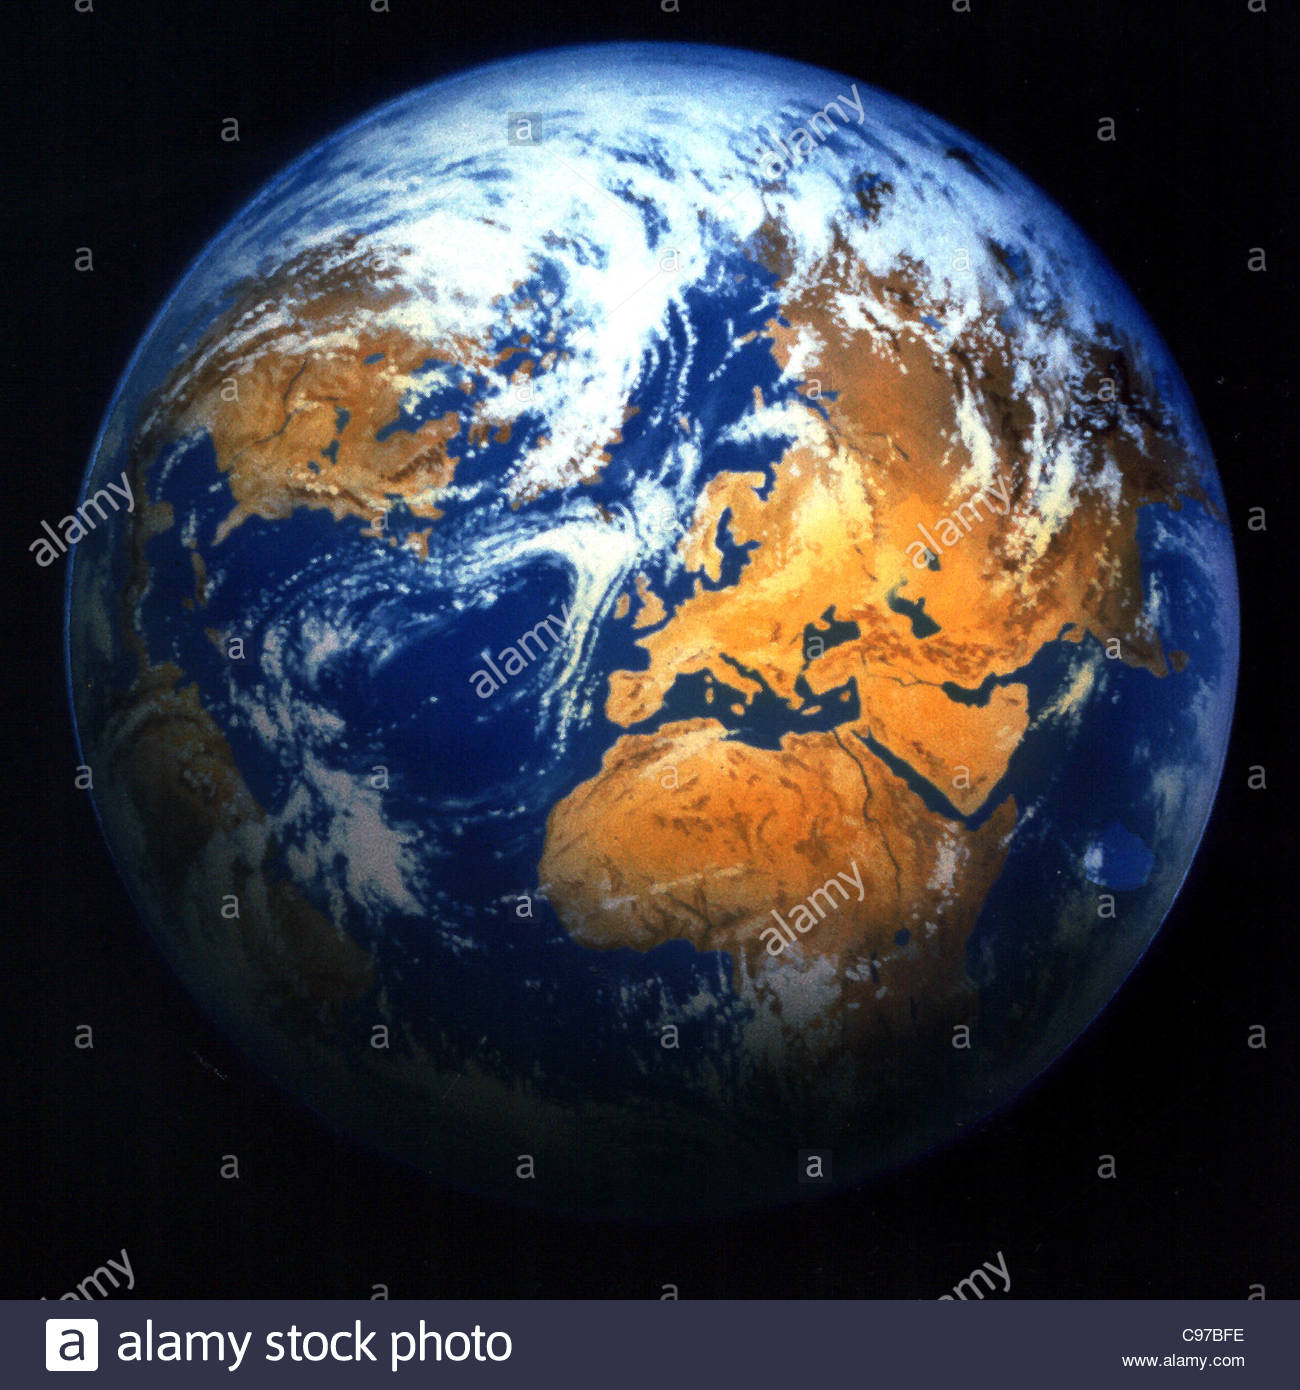 Globe view 2 globe earth geography globe globe world map map globe view 2 globe earth geography globe globe world map map software geogr gumiabroncs Gallery